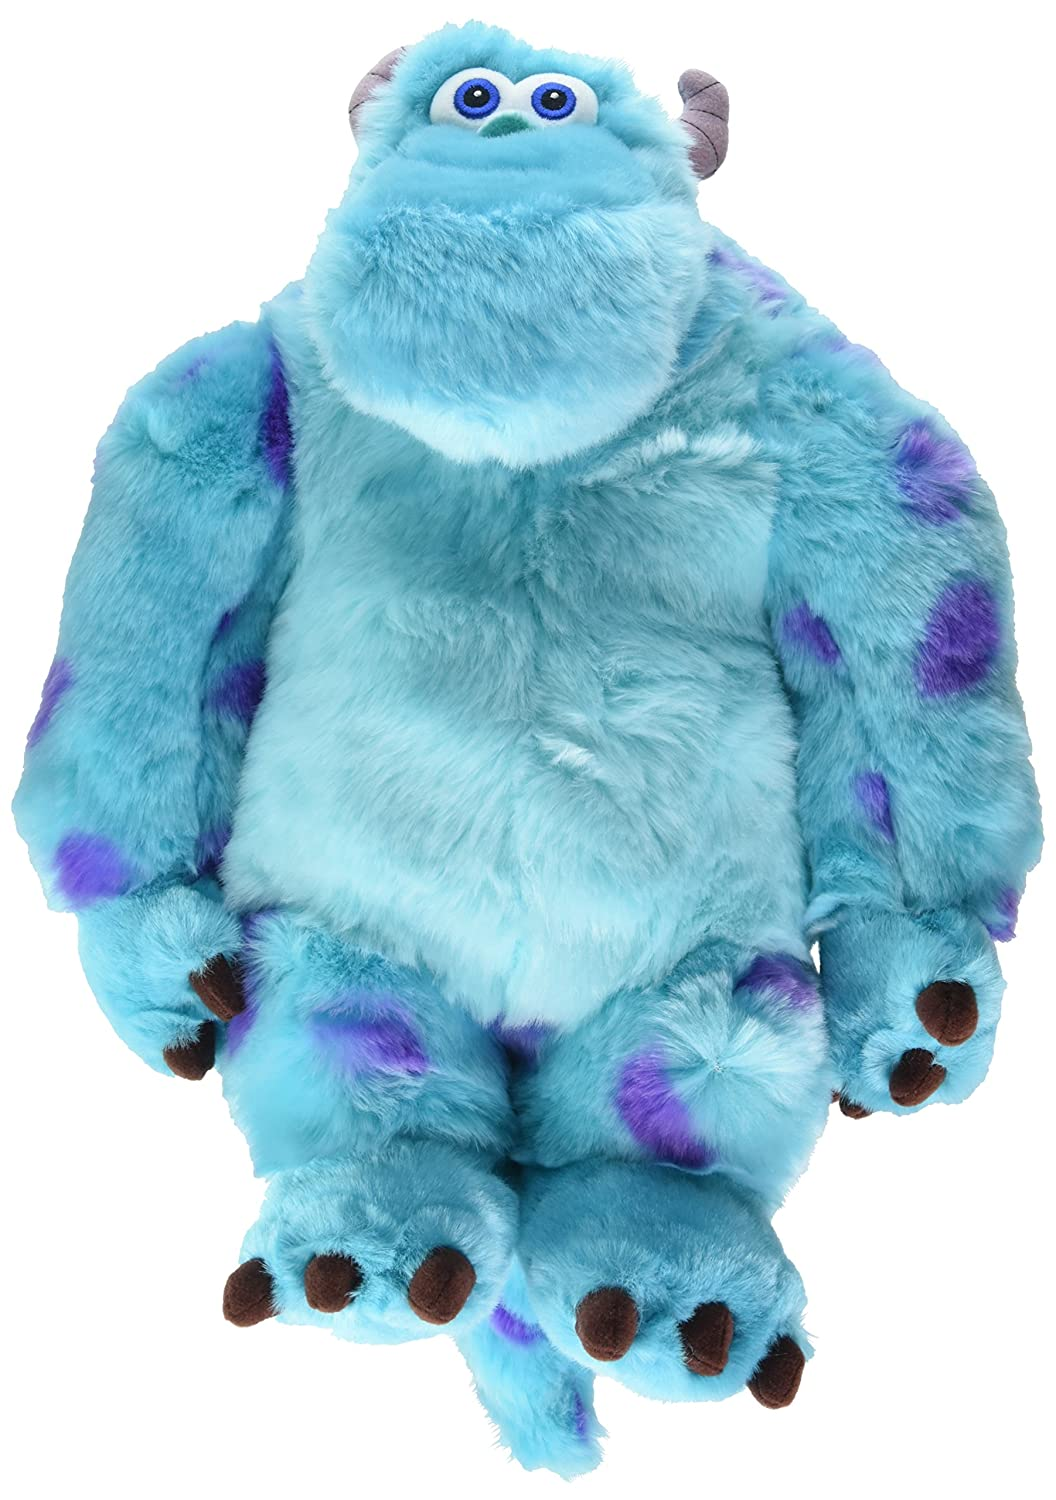 Disney Monsters Inc Sulley 15 Plush